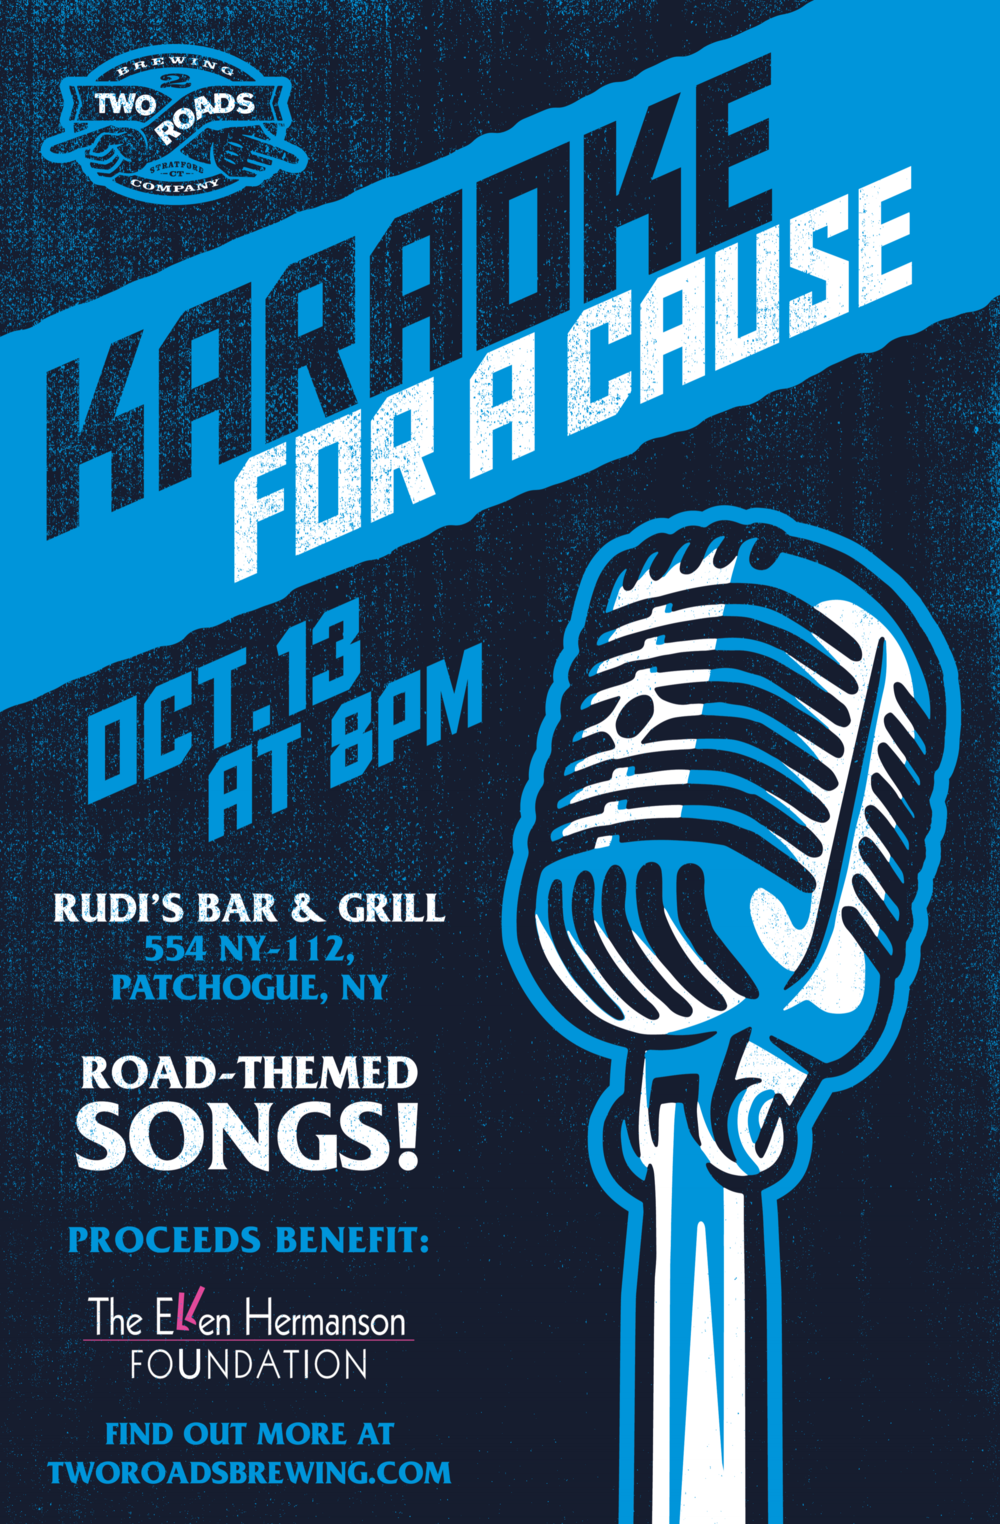 TRB_Karaoke-for-a-Cause_Poster_11x17_bleeds-01.png